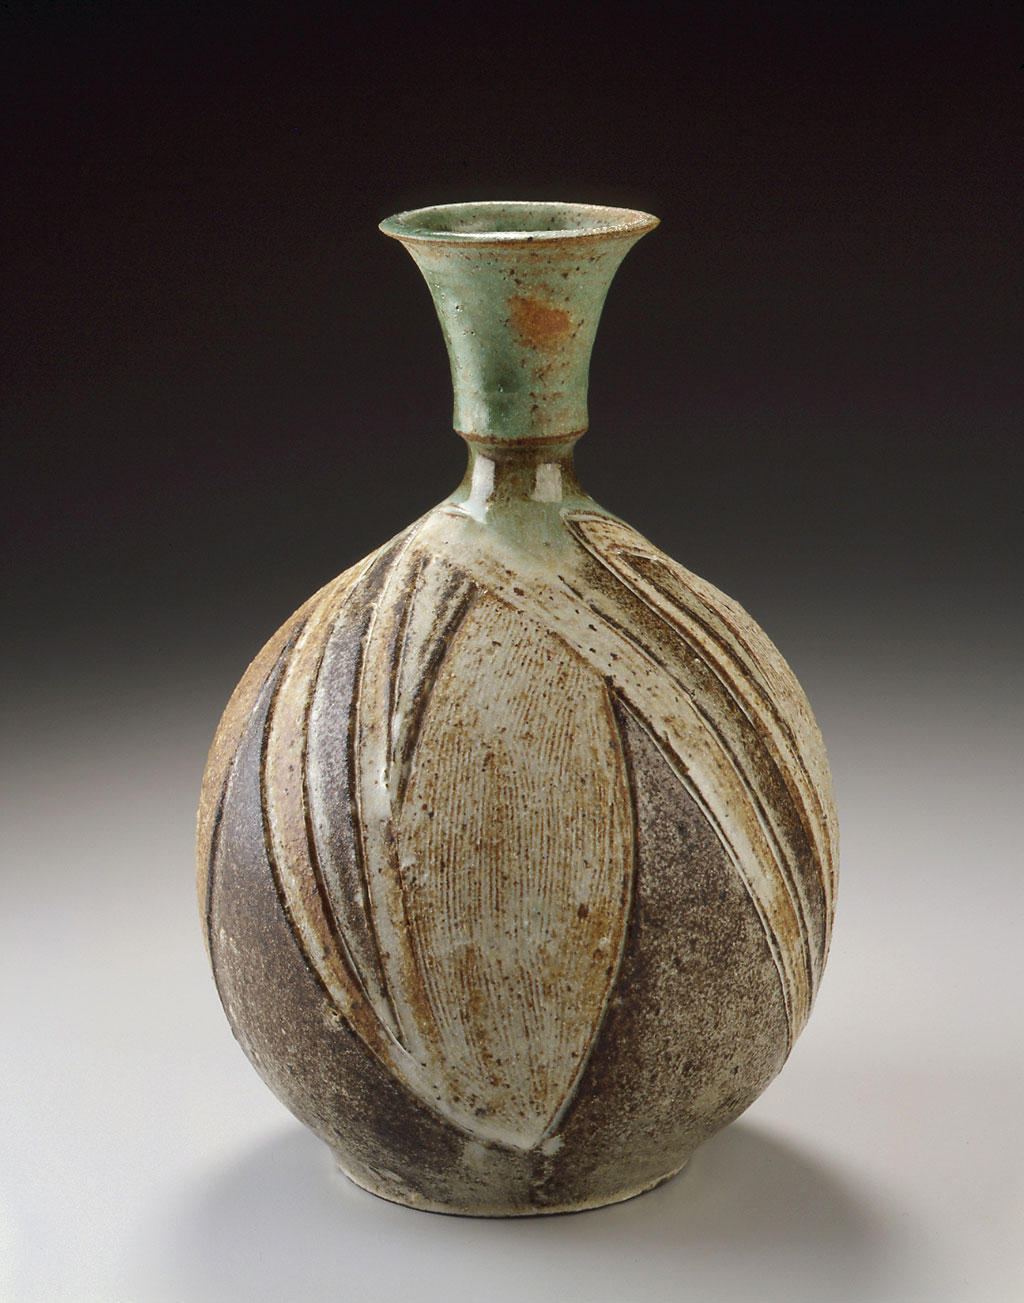 Marguerite Wildenhain, Untitled vase, c.1972. Courtesy Forrest L. Merrill, M. Lee Fatheree photograph